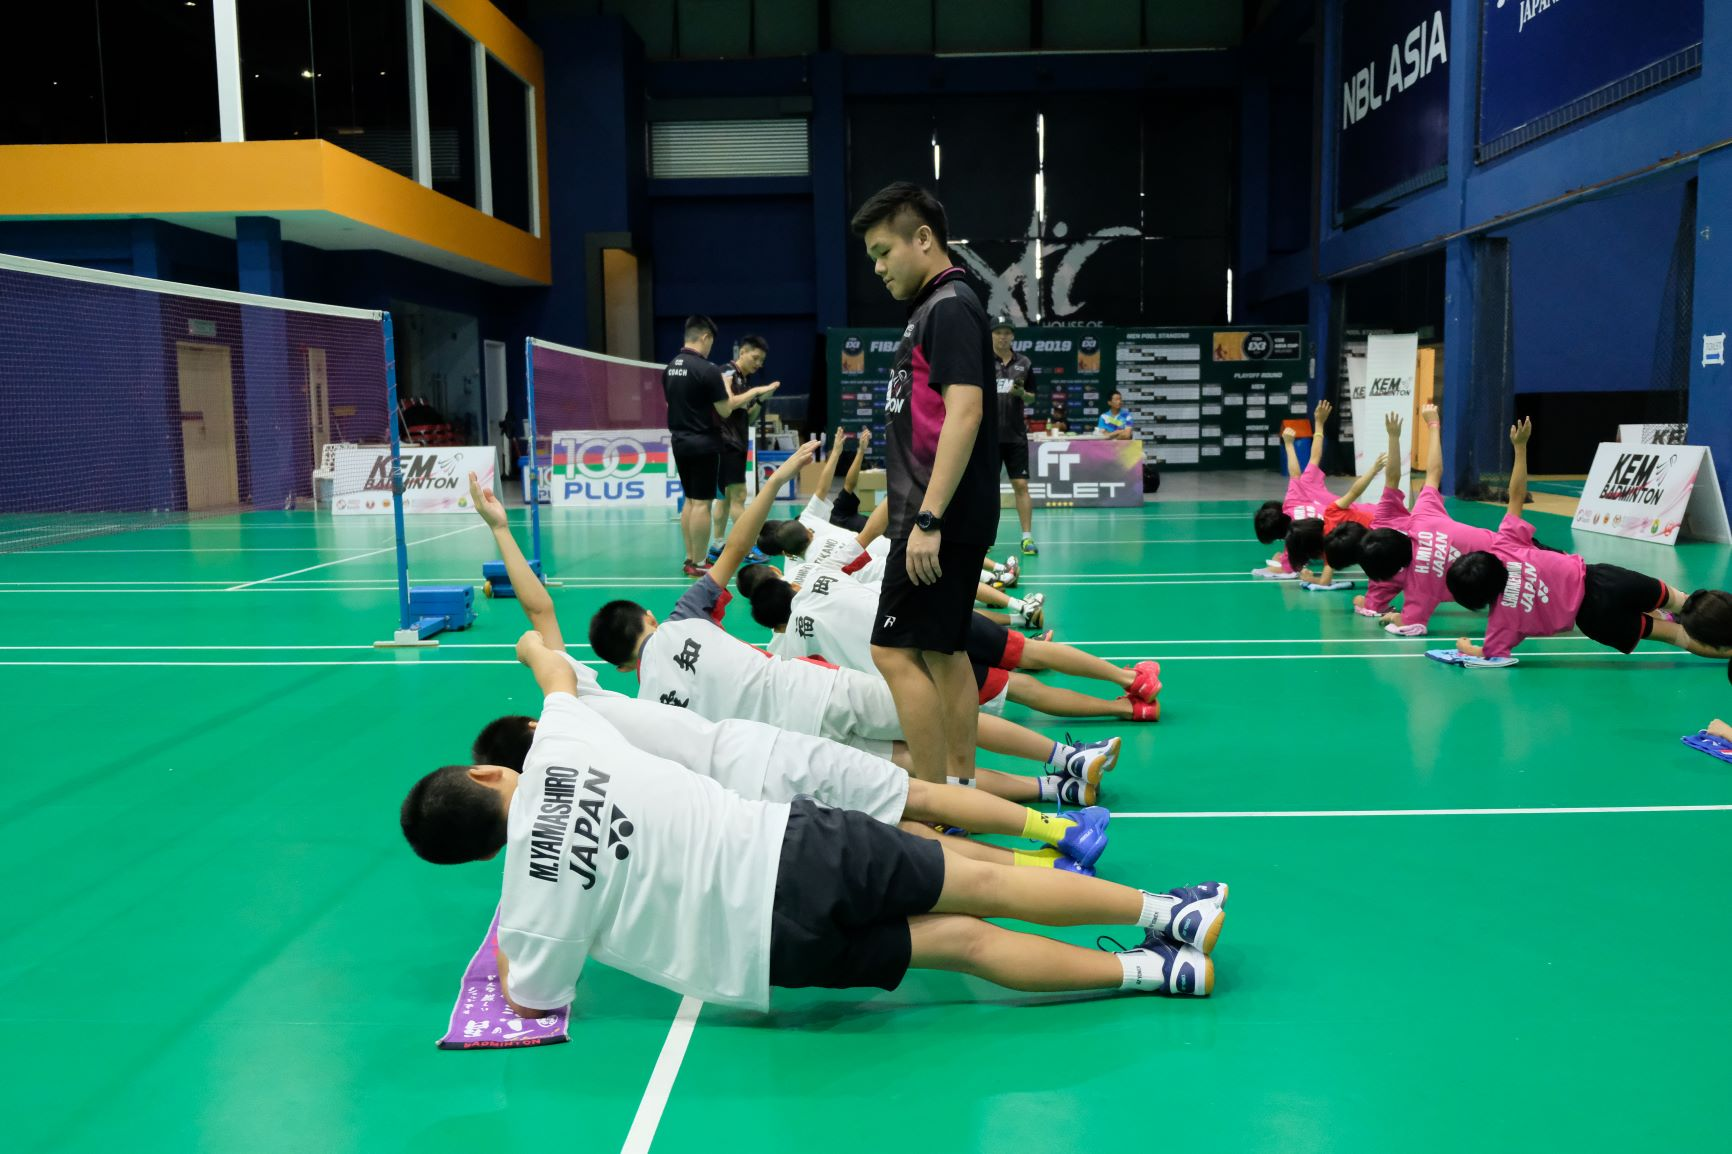 The Japanese junior players were in KL for a week to train with Astro Kem Badminton.